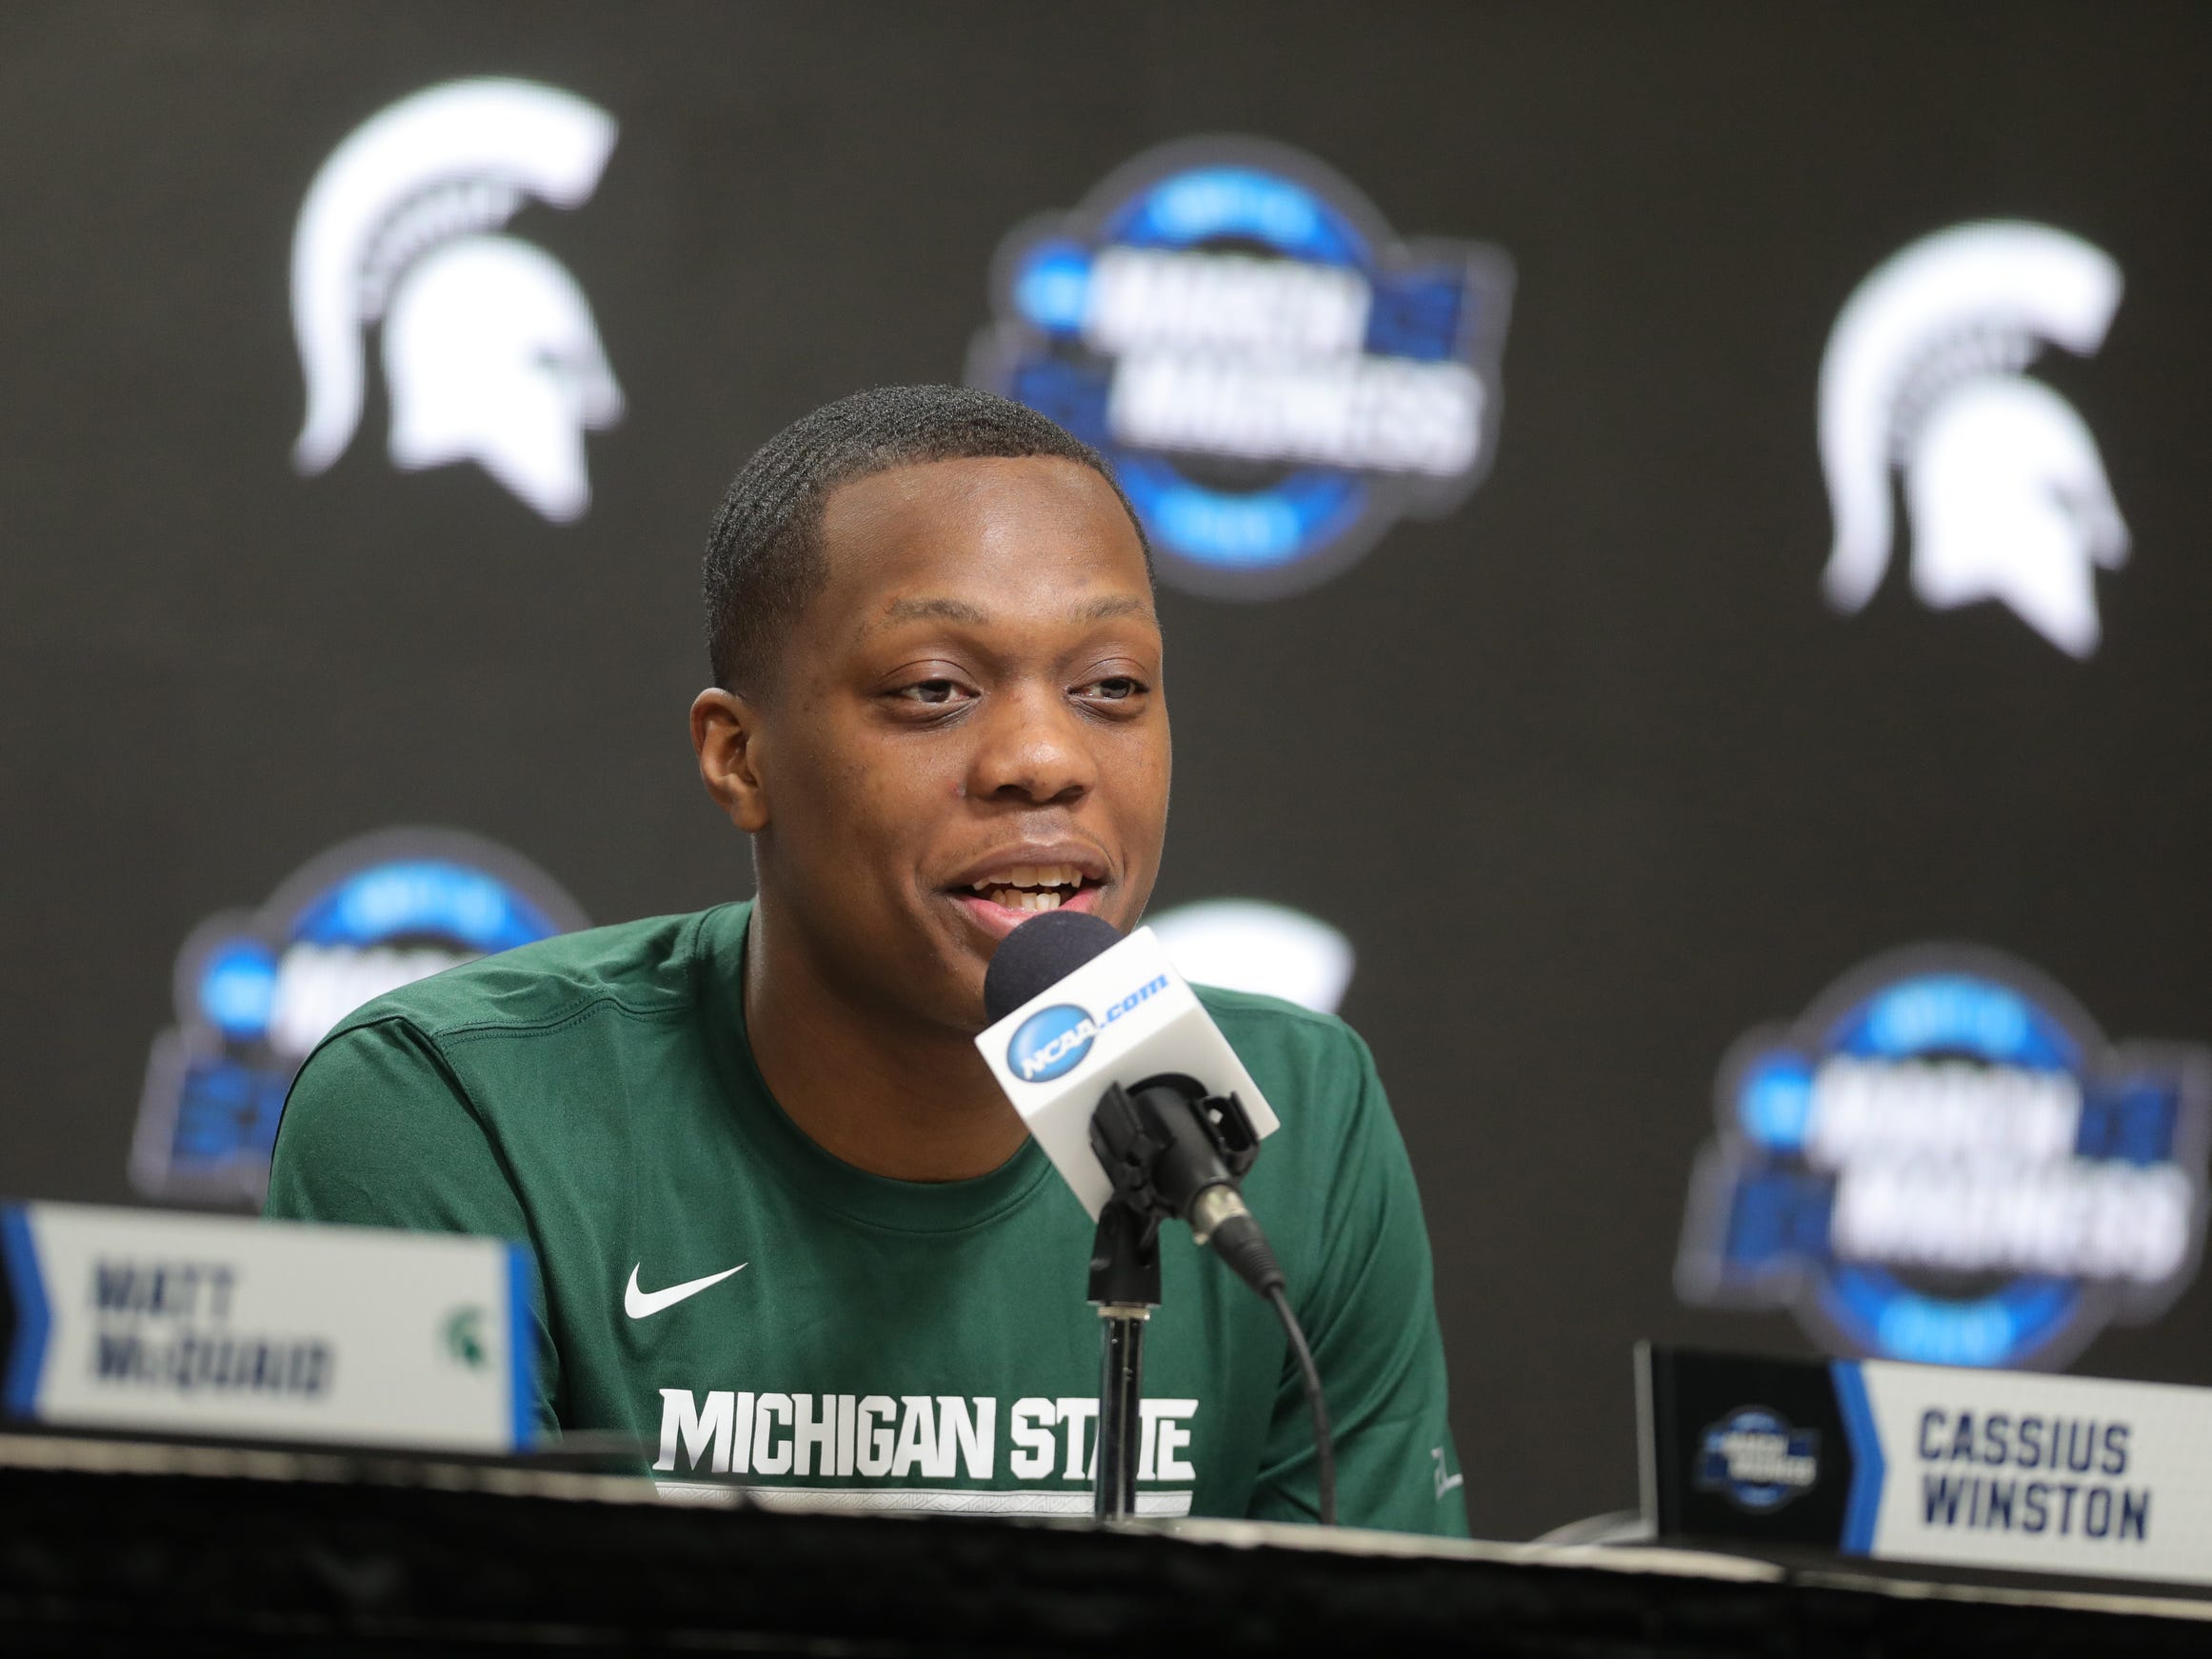 Michigan State guard Cassius Winston talks with reporters about their Sweet 16 game against LSU, Thursday, March 28, 2019 at the Capital One Arena in Washington, D.C.